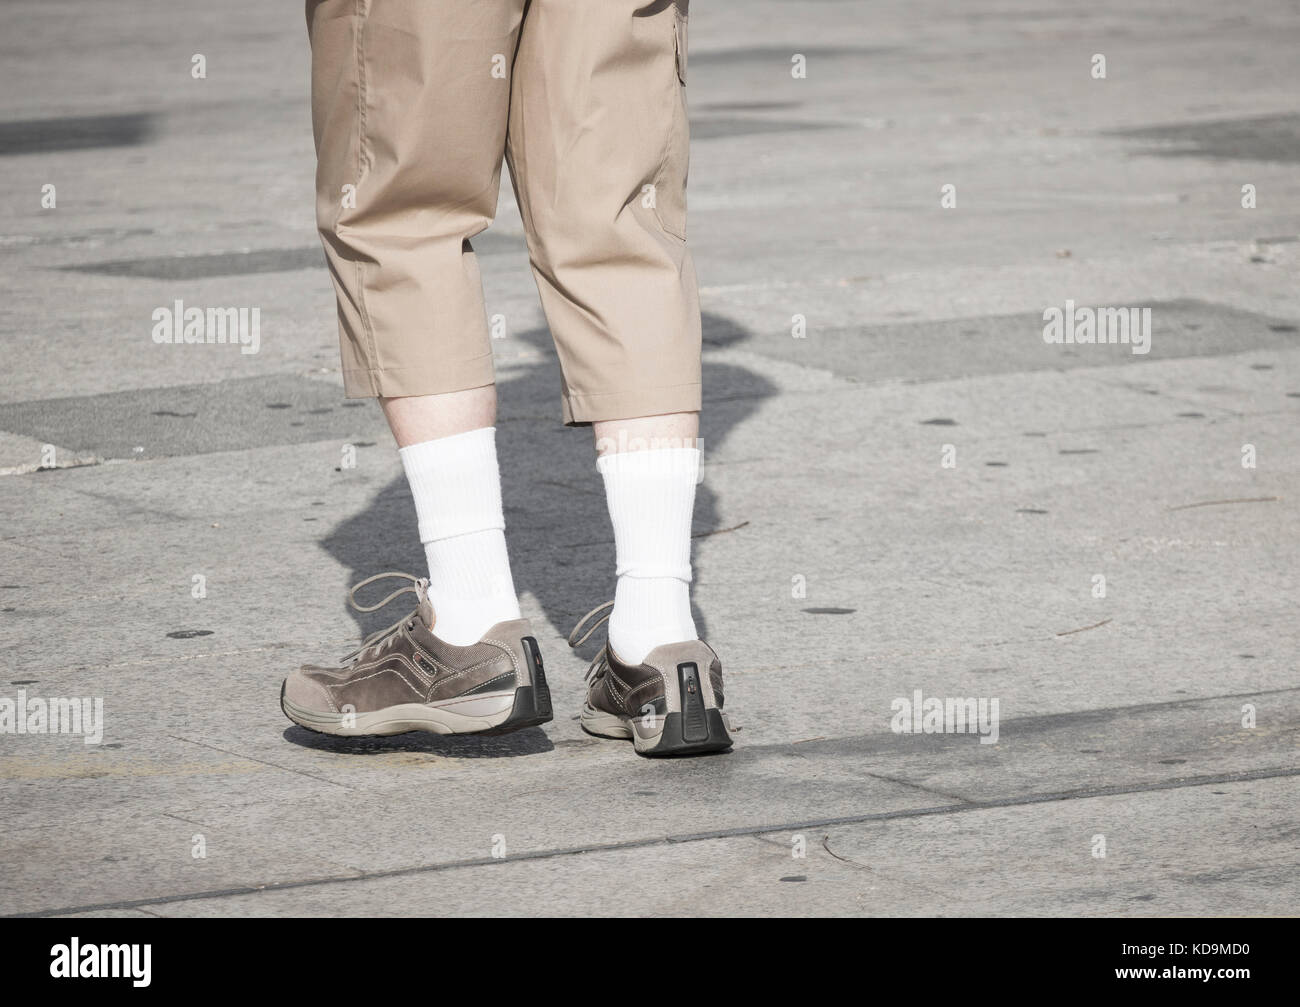 Rear view of tourist in Spain wearing three quarter length trousers and white socks. - Stock Image